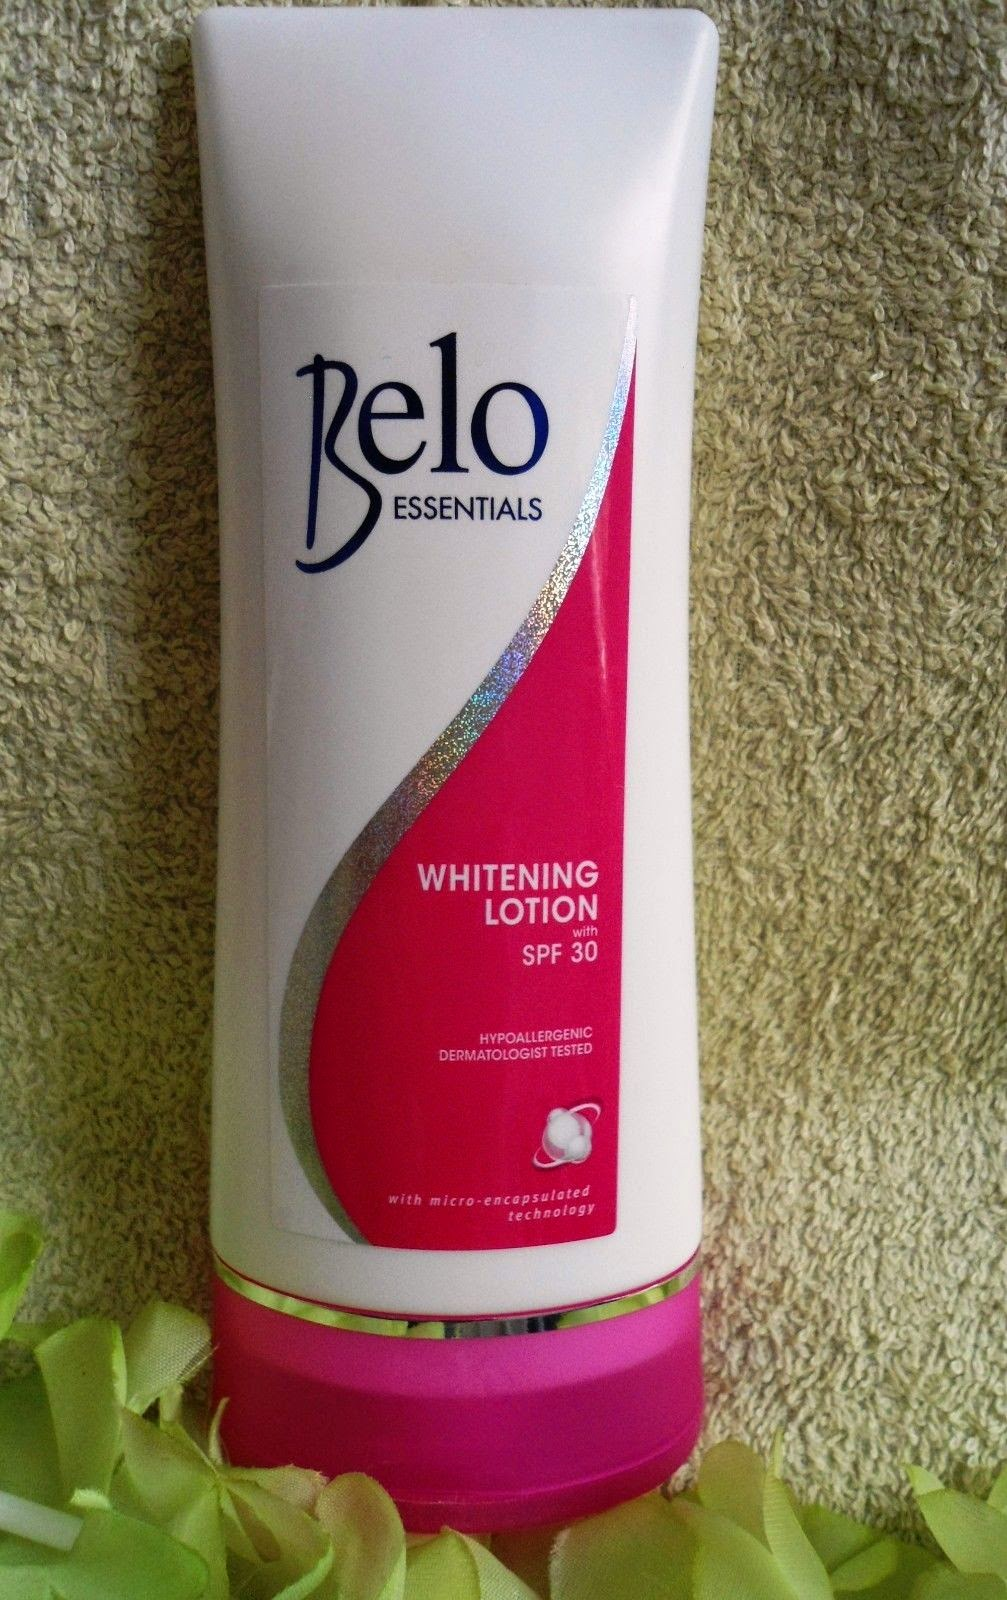 Trendz Fashion Accessories Cosmetics Belo Essentials Whitening Body Lotion Sp 100ml Spf 30 Pink Imphal India Free Shipping 09862719532